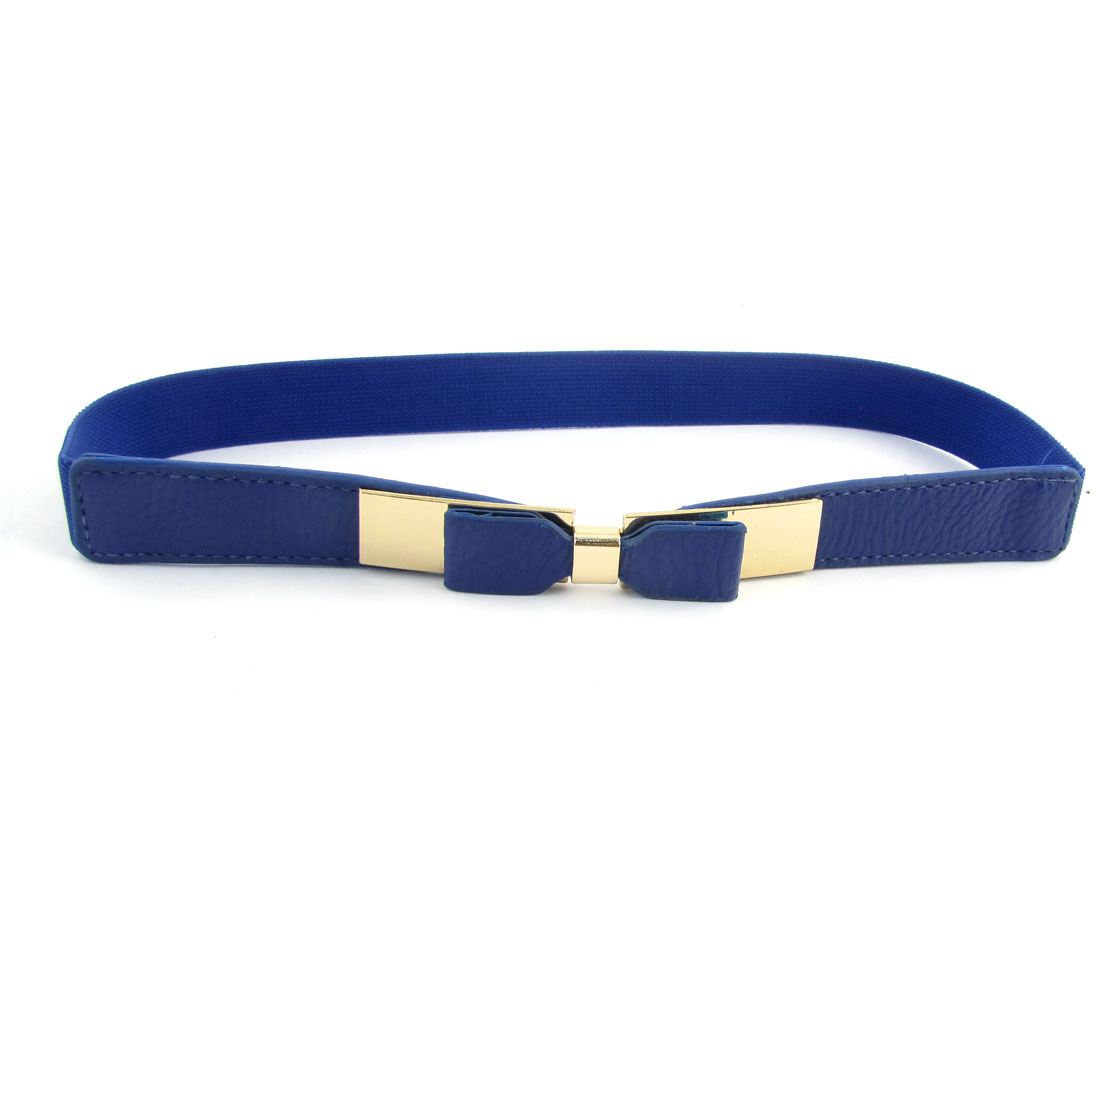 Blue Bowknot Decor Metal Interlock Buckle Stretchy Cinch Waist Belt for Women